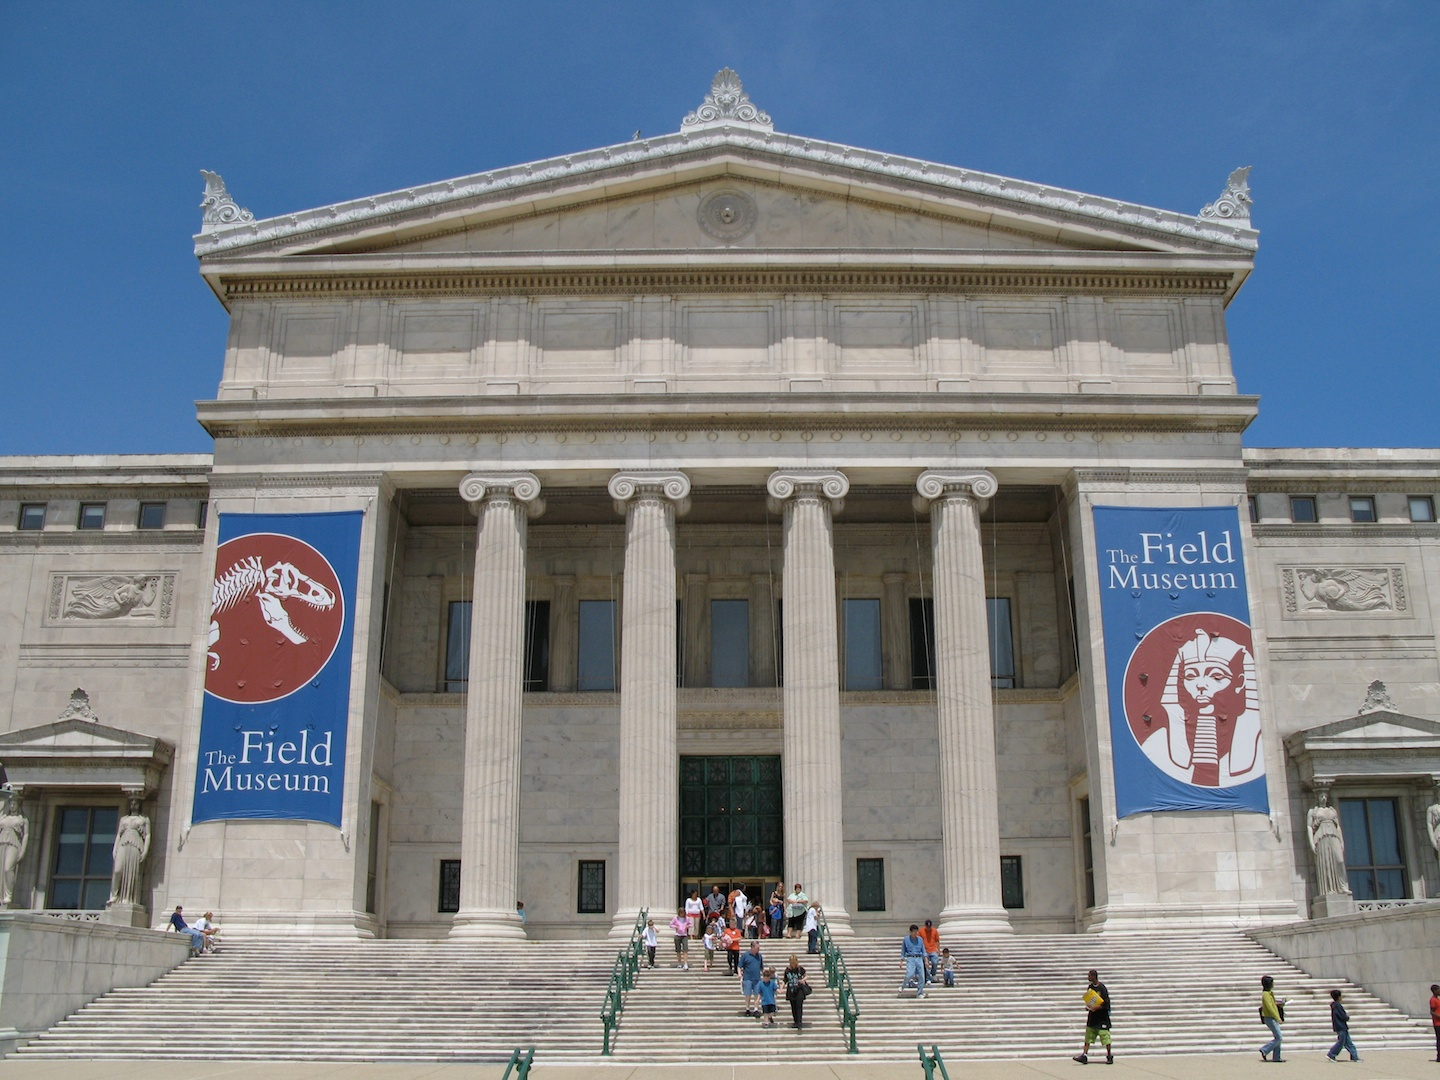 The Field Museum, Chicago, IL